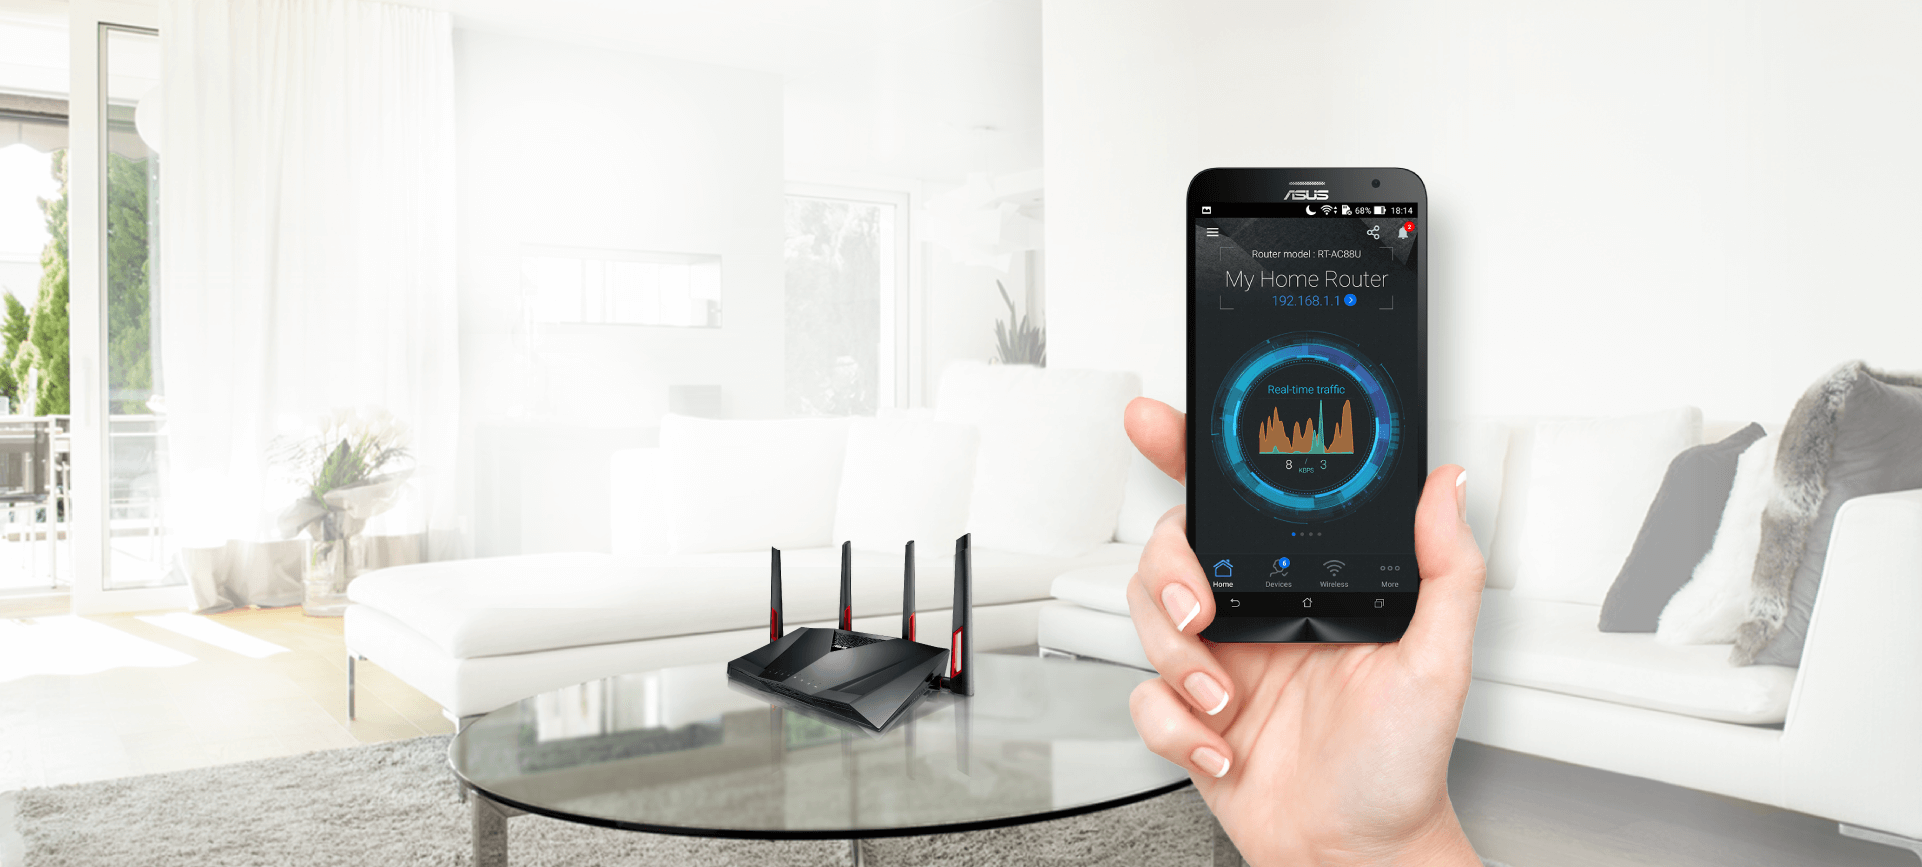 ASUS Router App helps you to control your home network